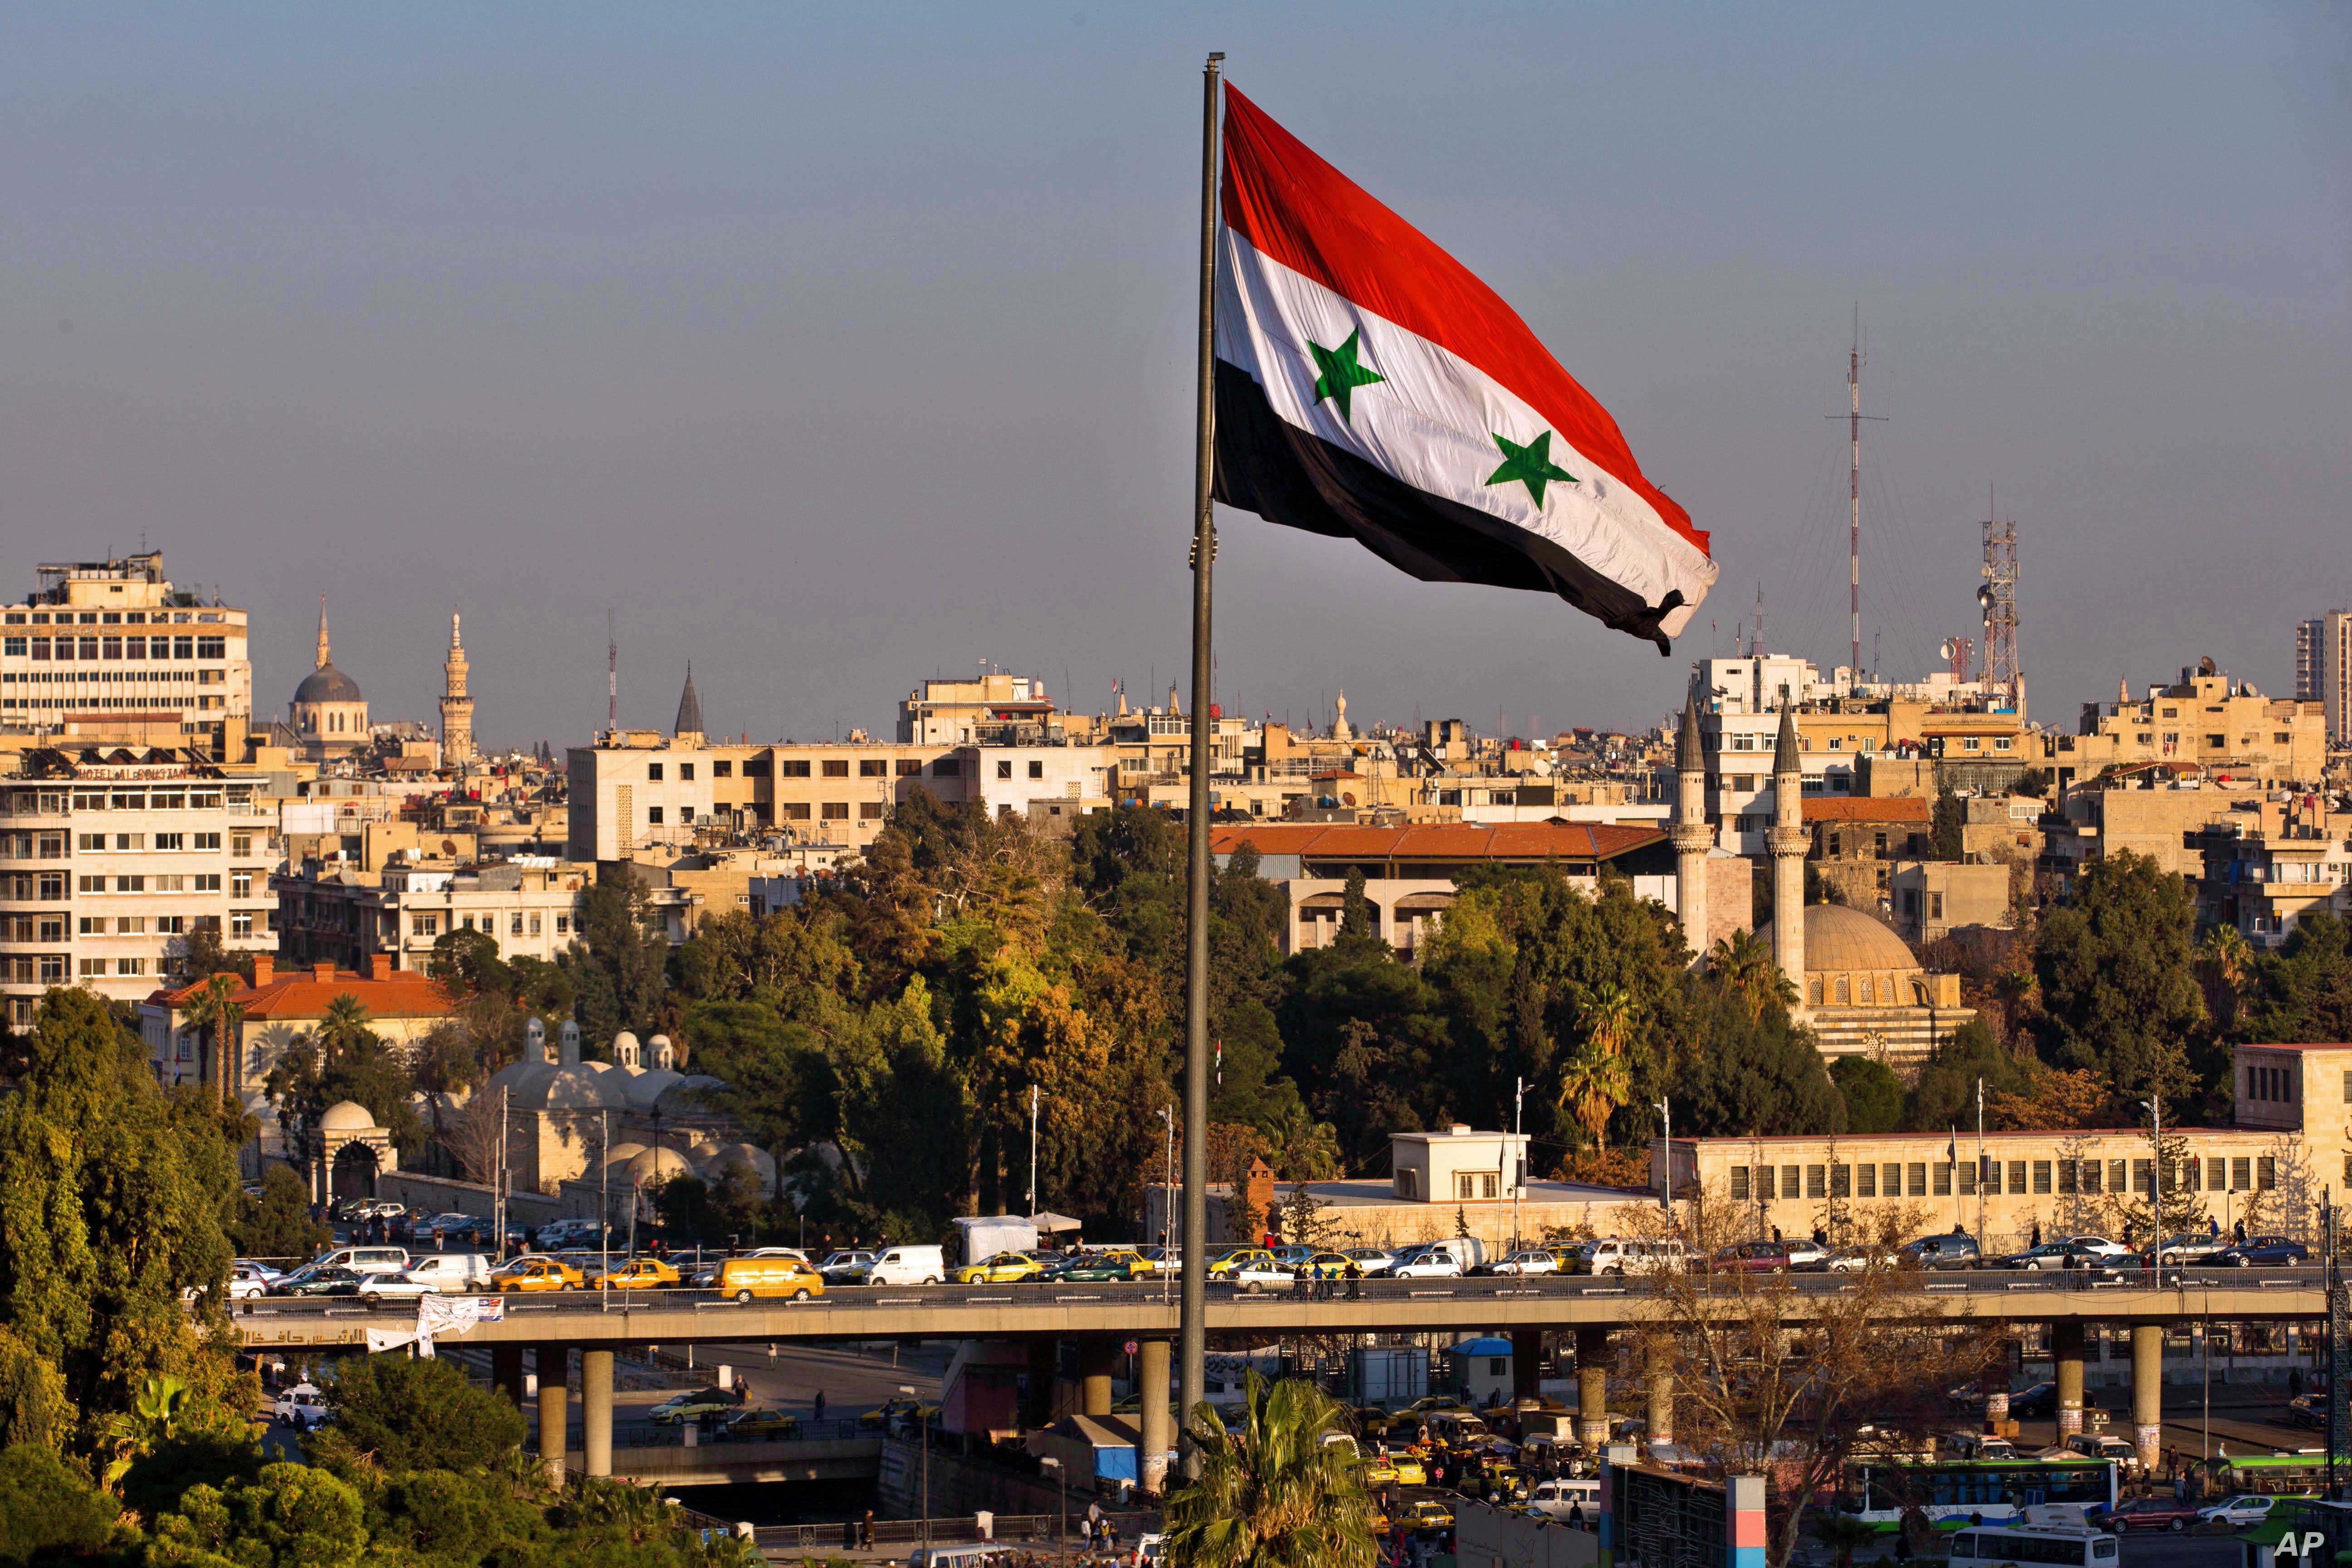 A Syrian national flag waves as vehicles move slowly on a bridge during rush hour, in Damascus, Syria, Feb. 28, 2016.